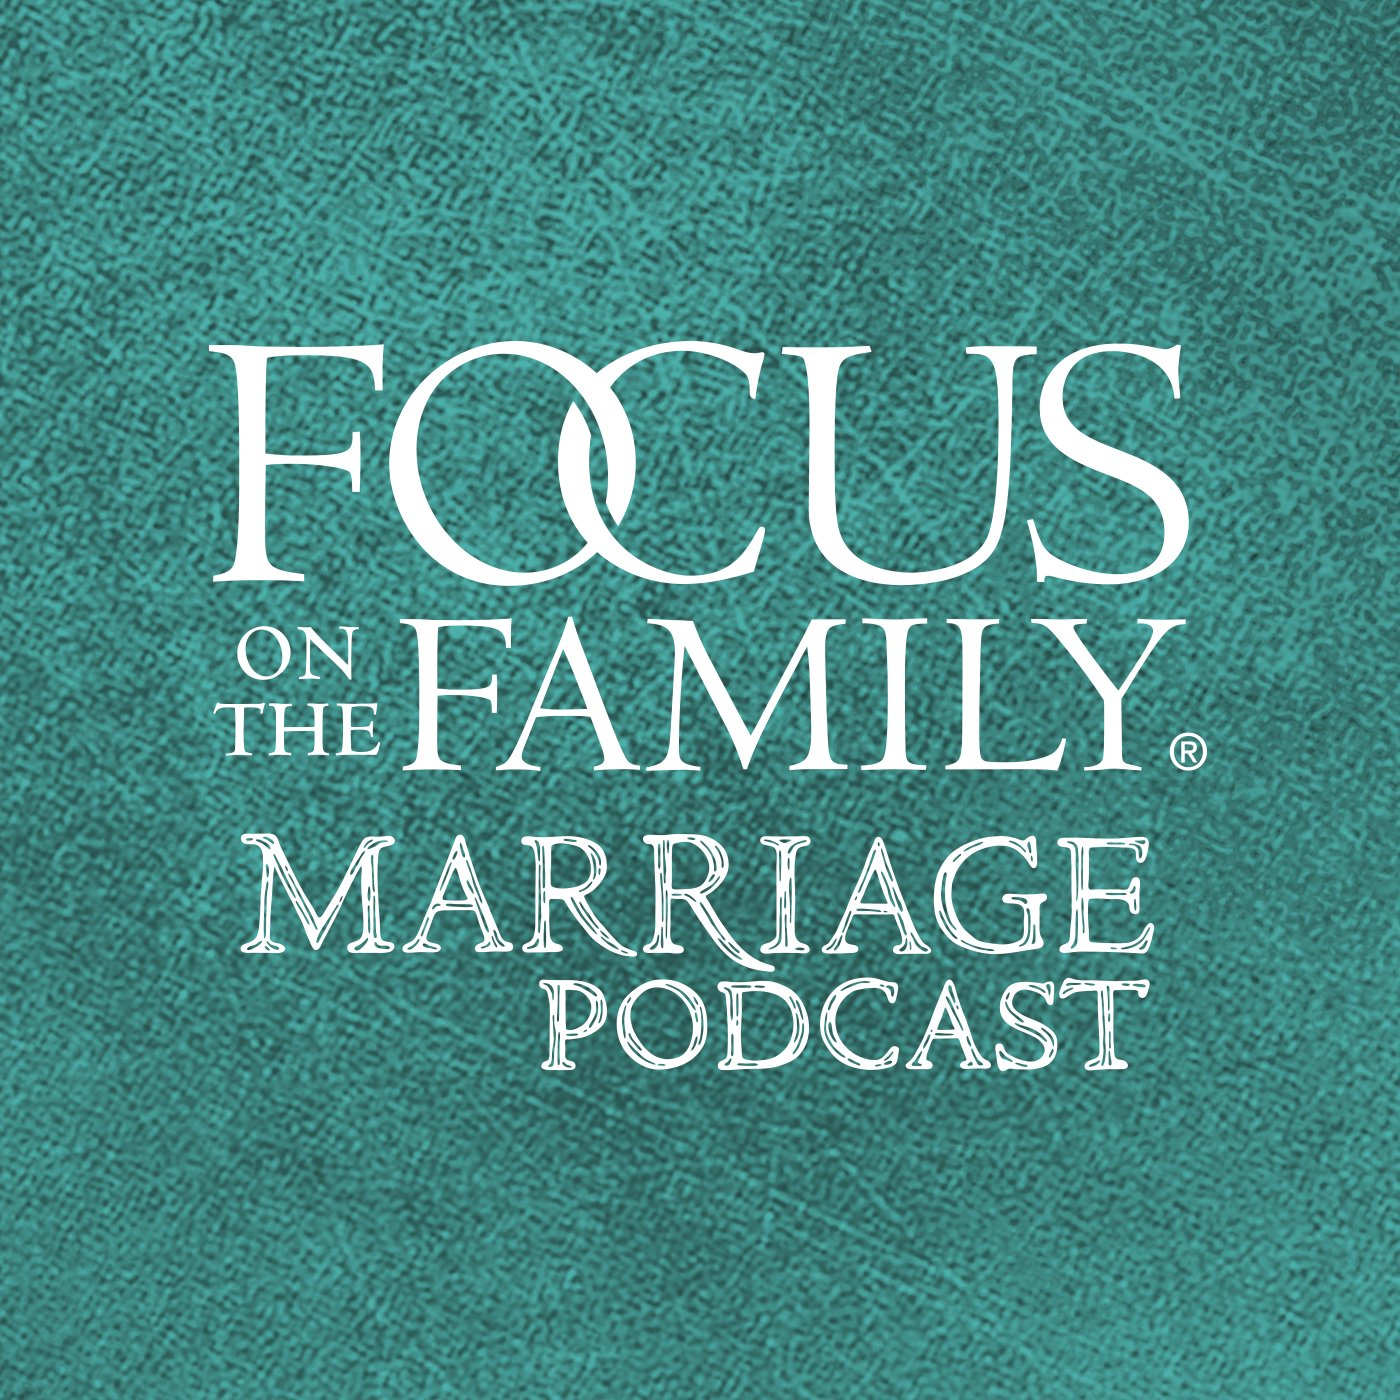 Focus on Marriage Podcast Logo